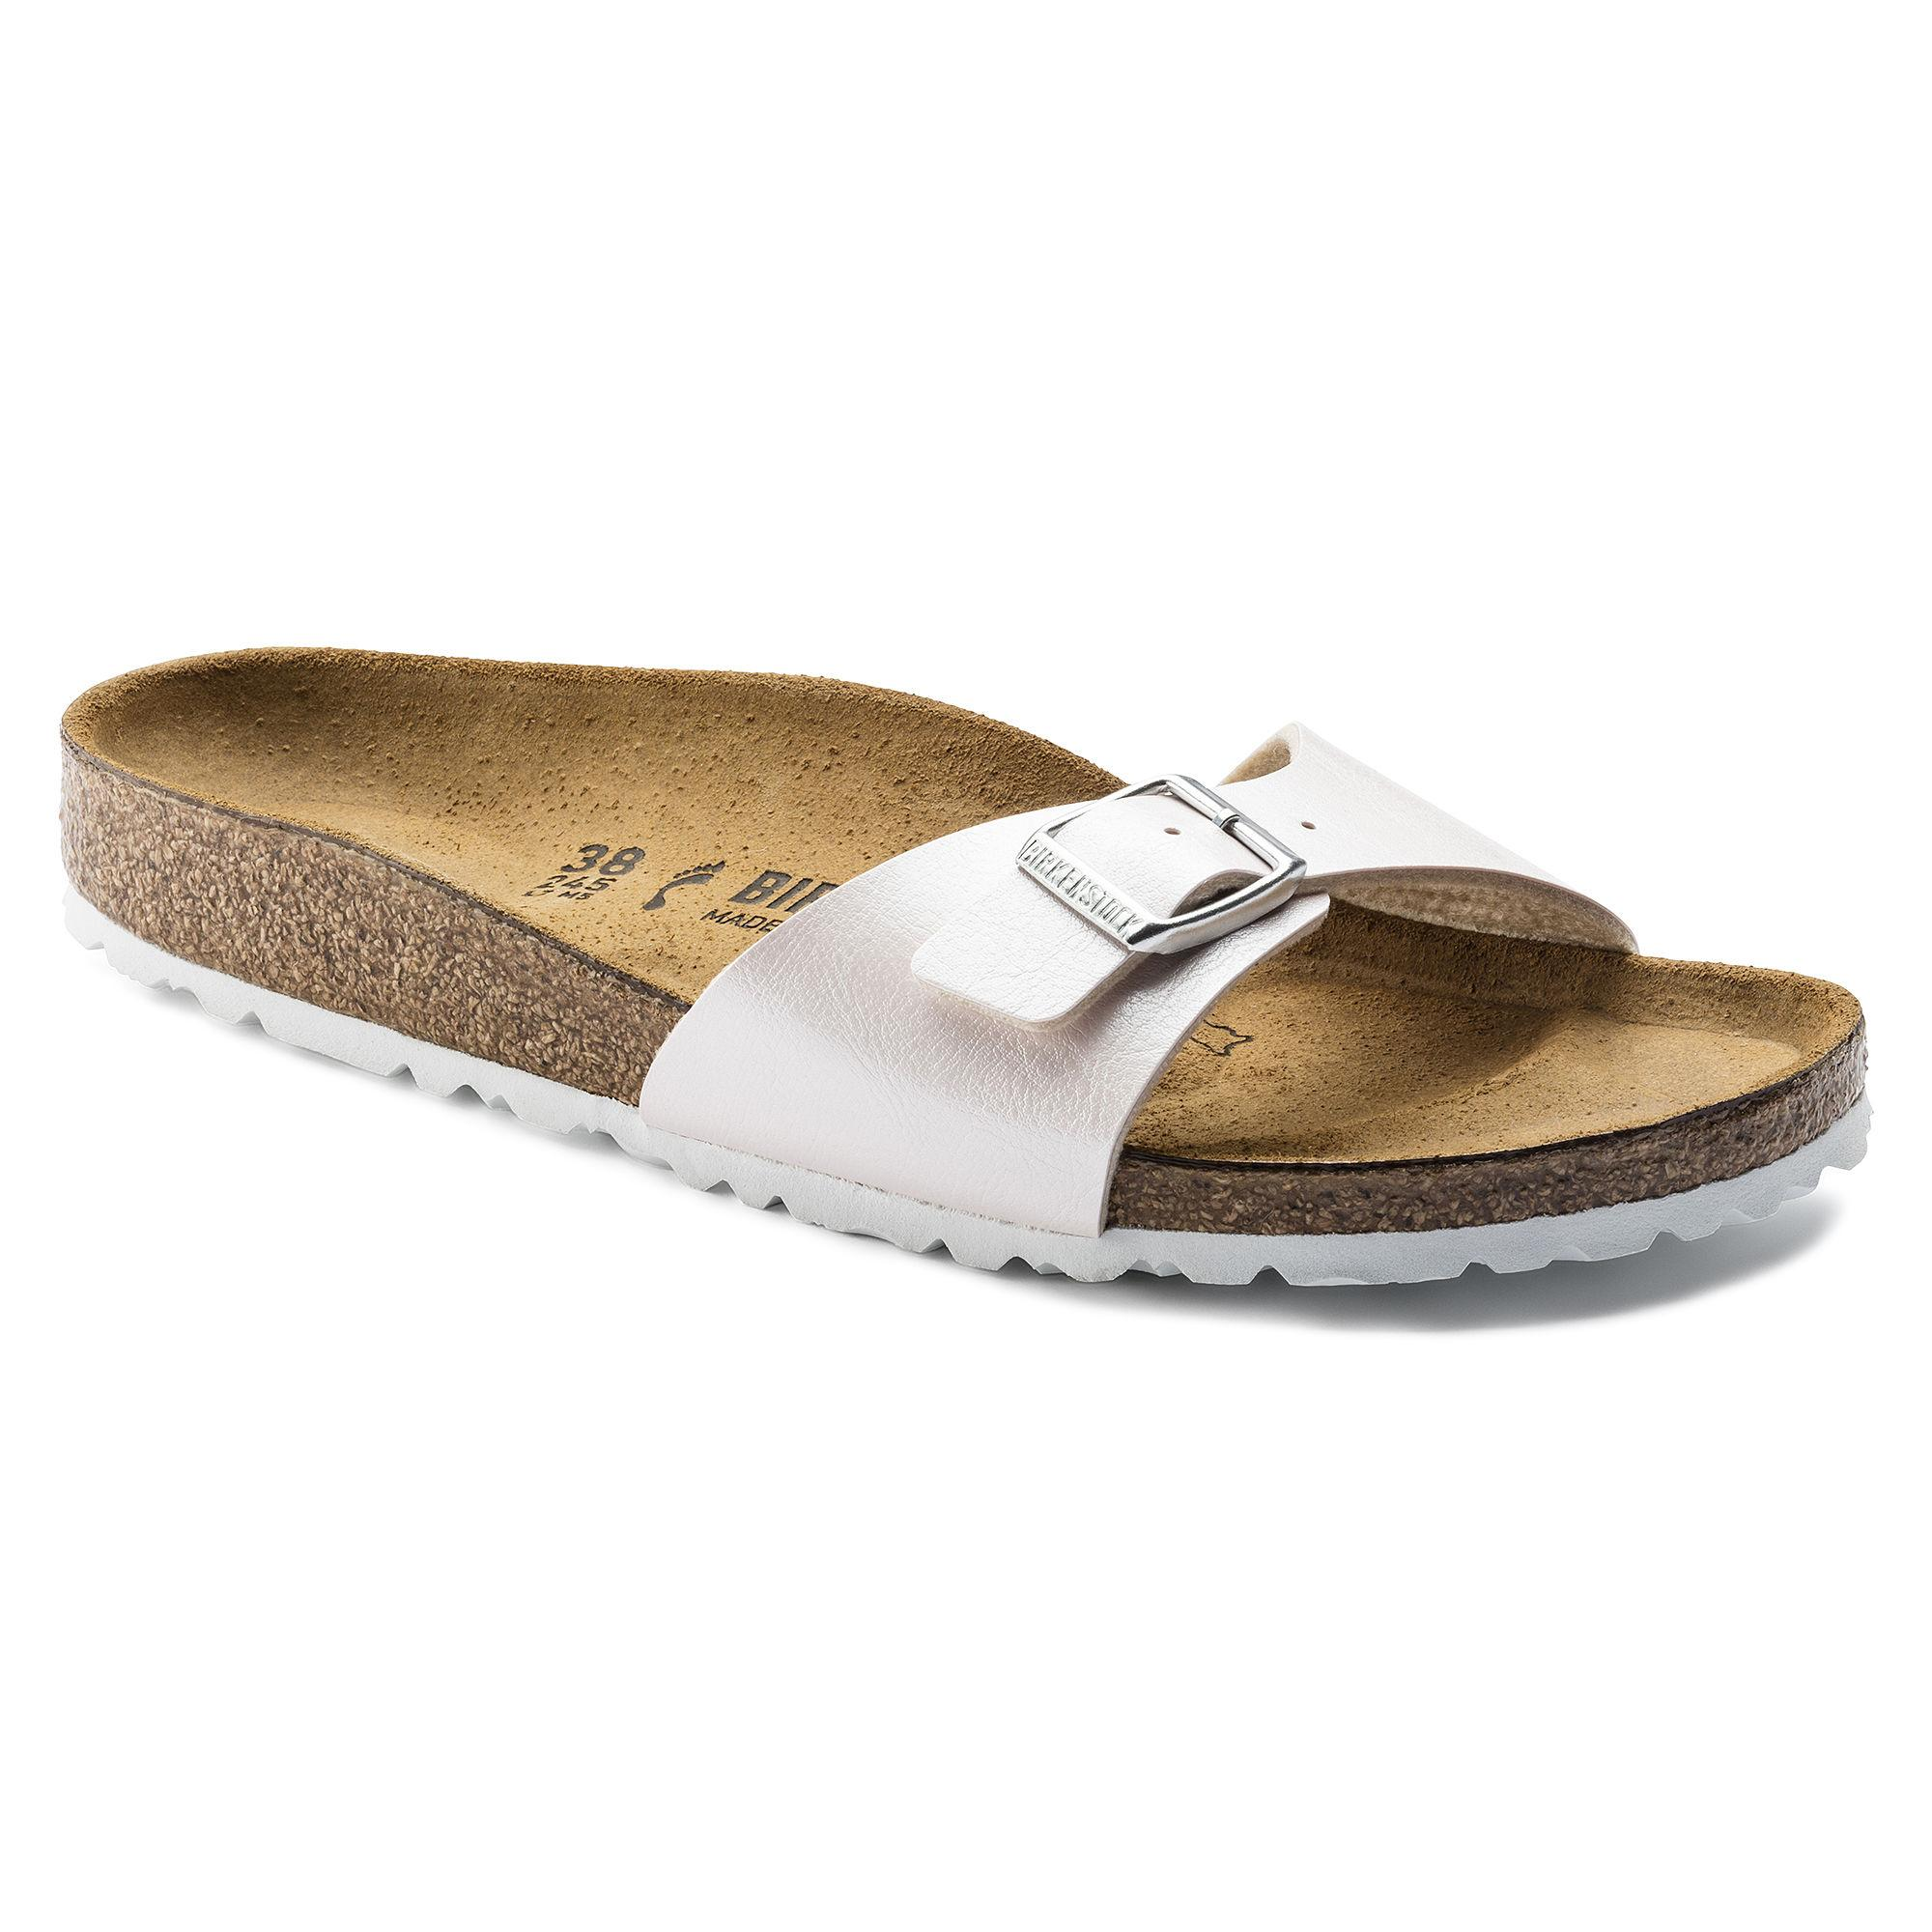 129f53d573e9 Flat Sandals for Women for sale - Summer Sandals online brands ...